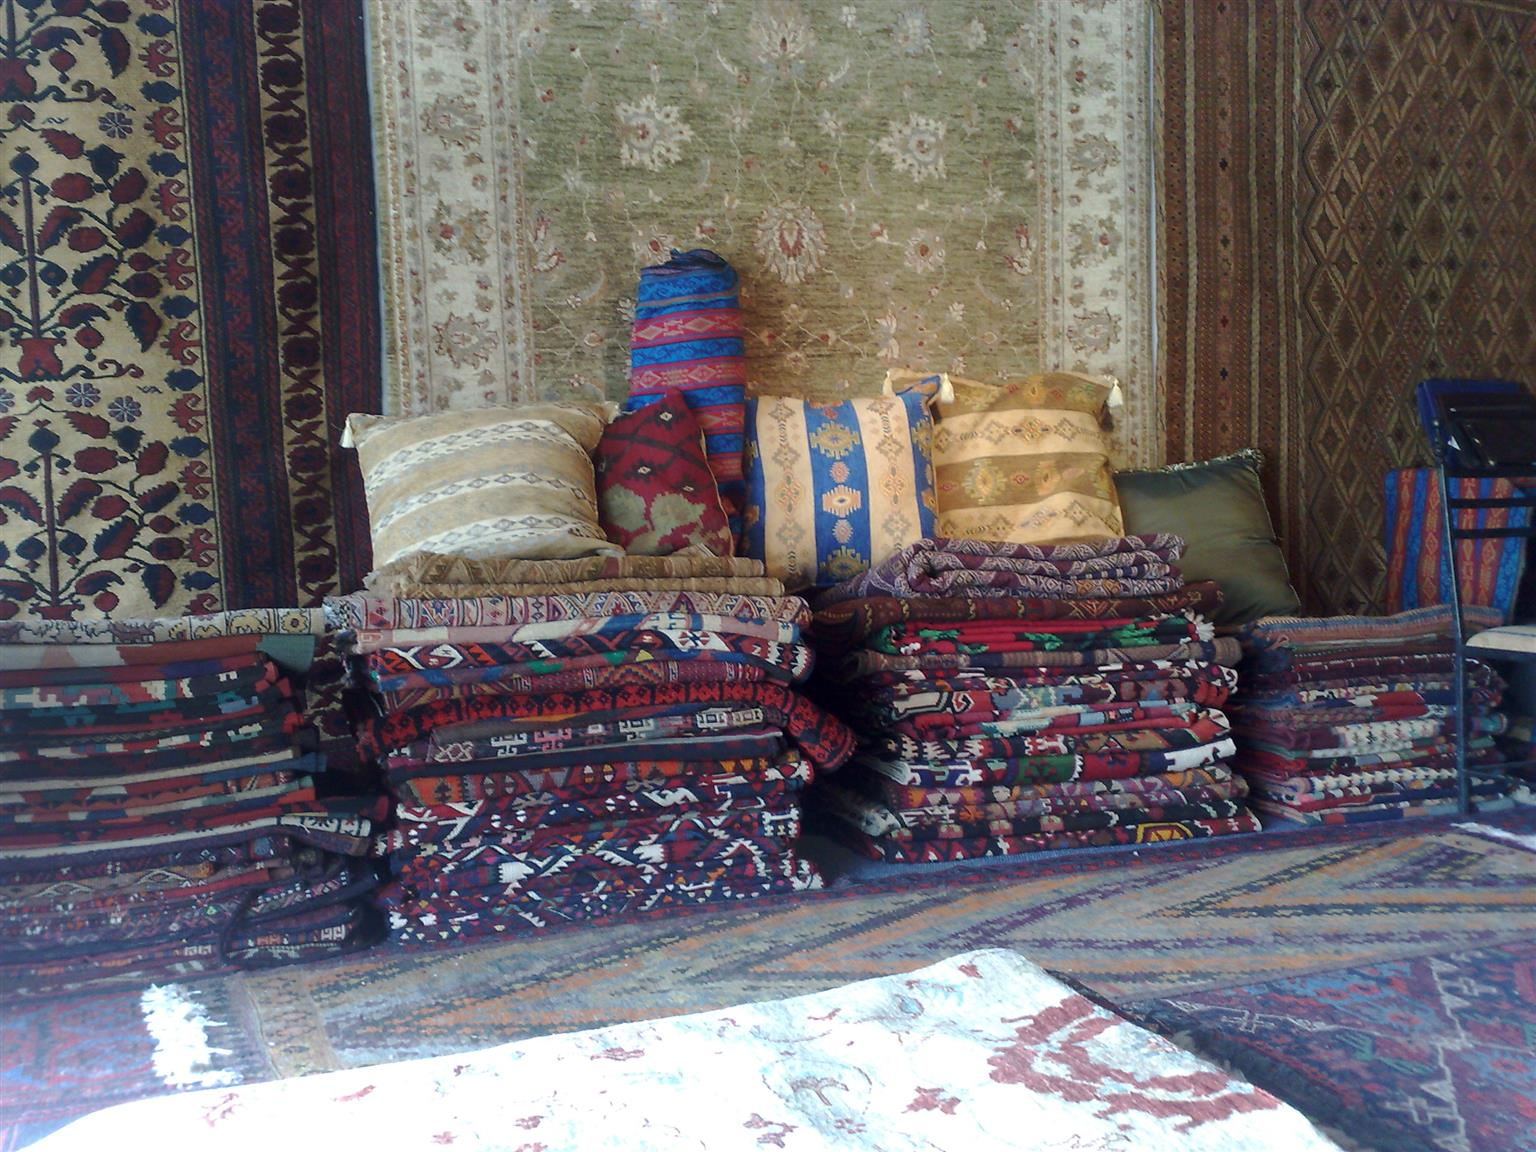 GARAGE SALE-OUT FOR CARPETS ,RUGS, TABLE CLOTHS, CUSHIONS, INTERIOR DECORAIVE ITEMS